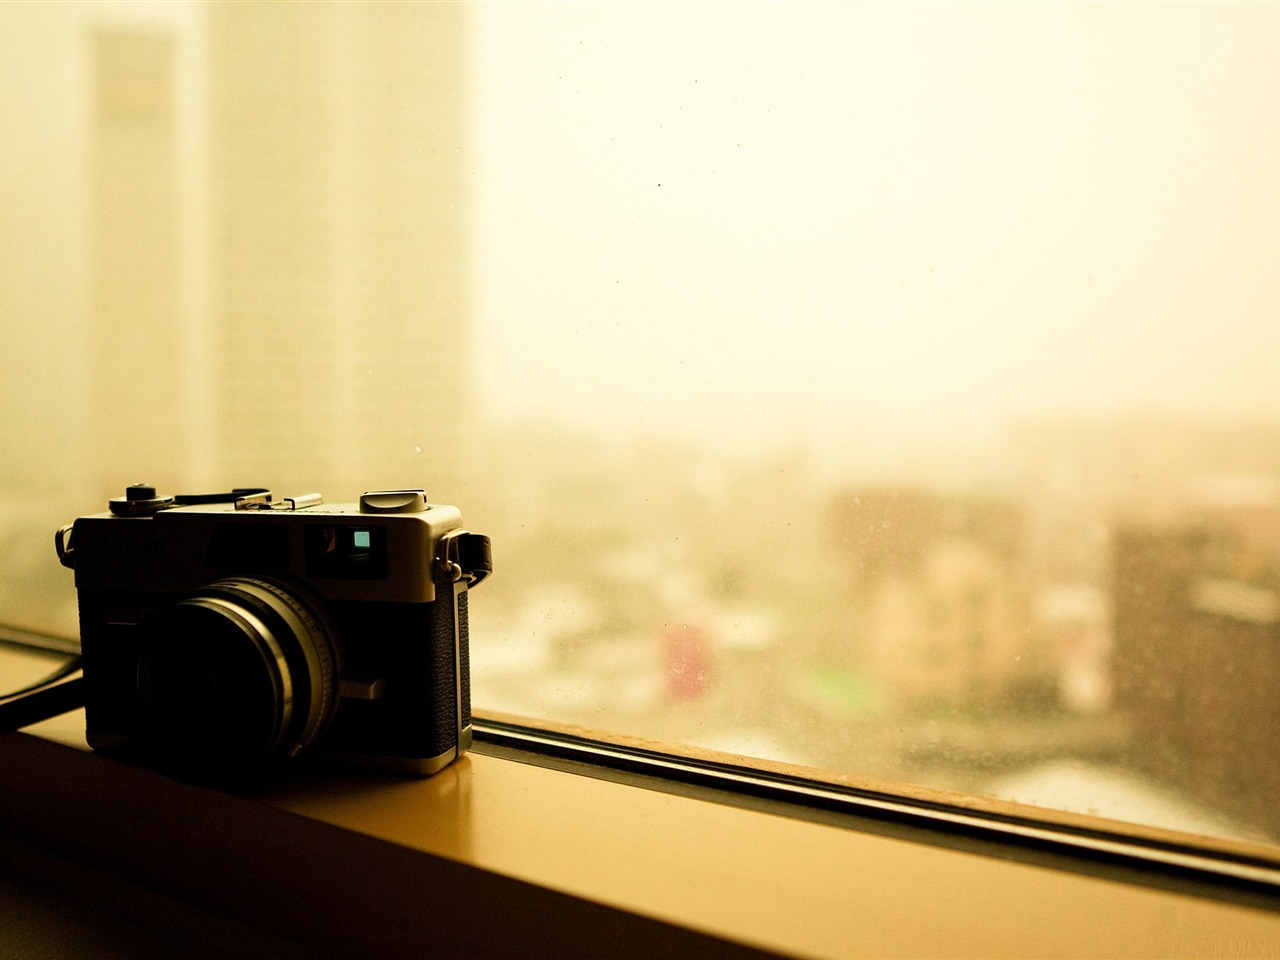 Old Camera Lomo Style Photography Desktop Wallpaper Preview